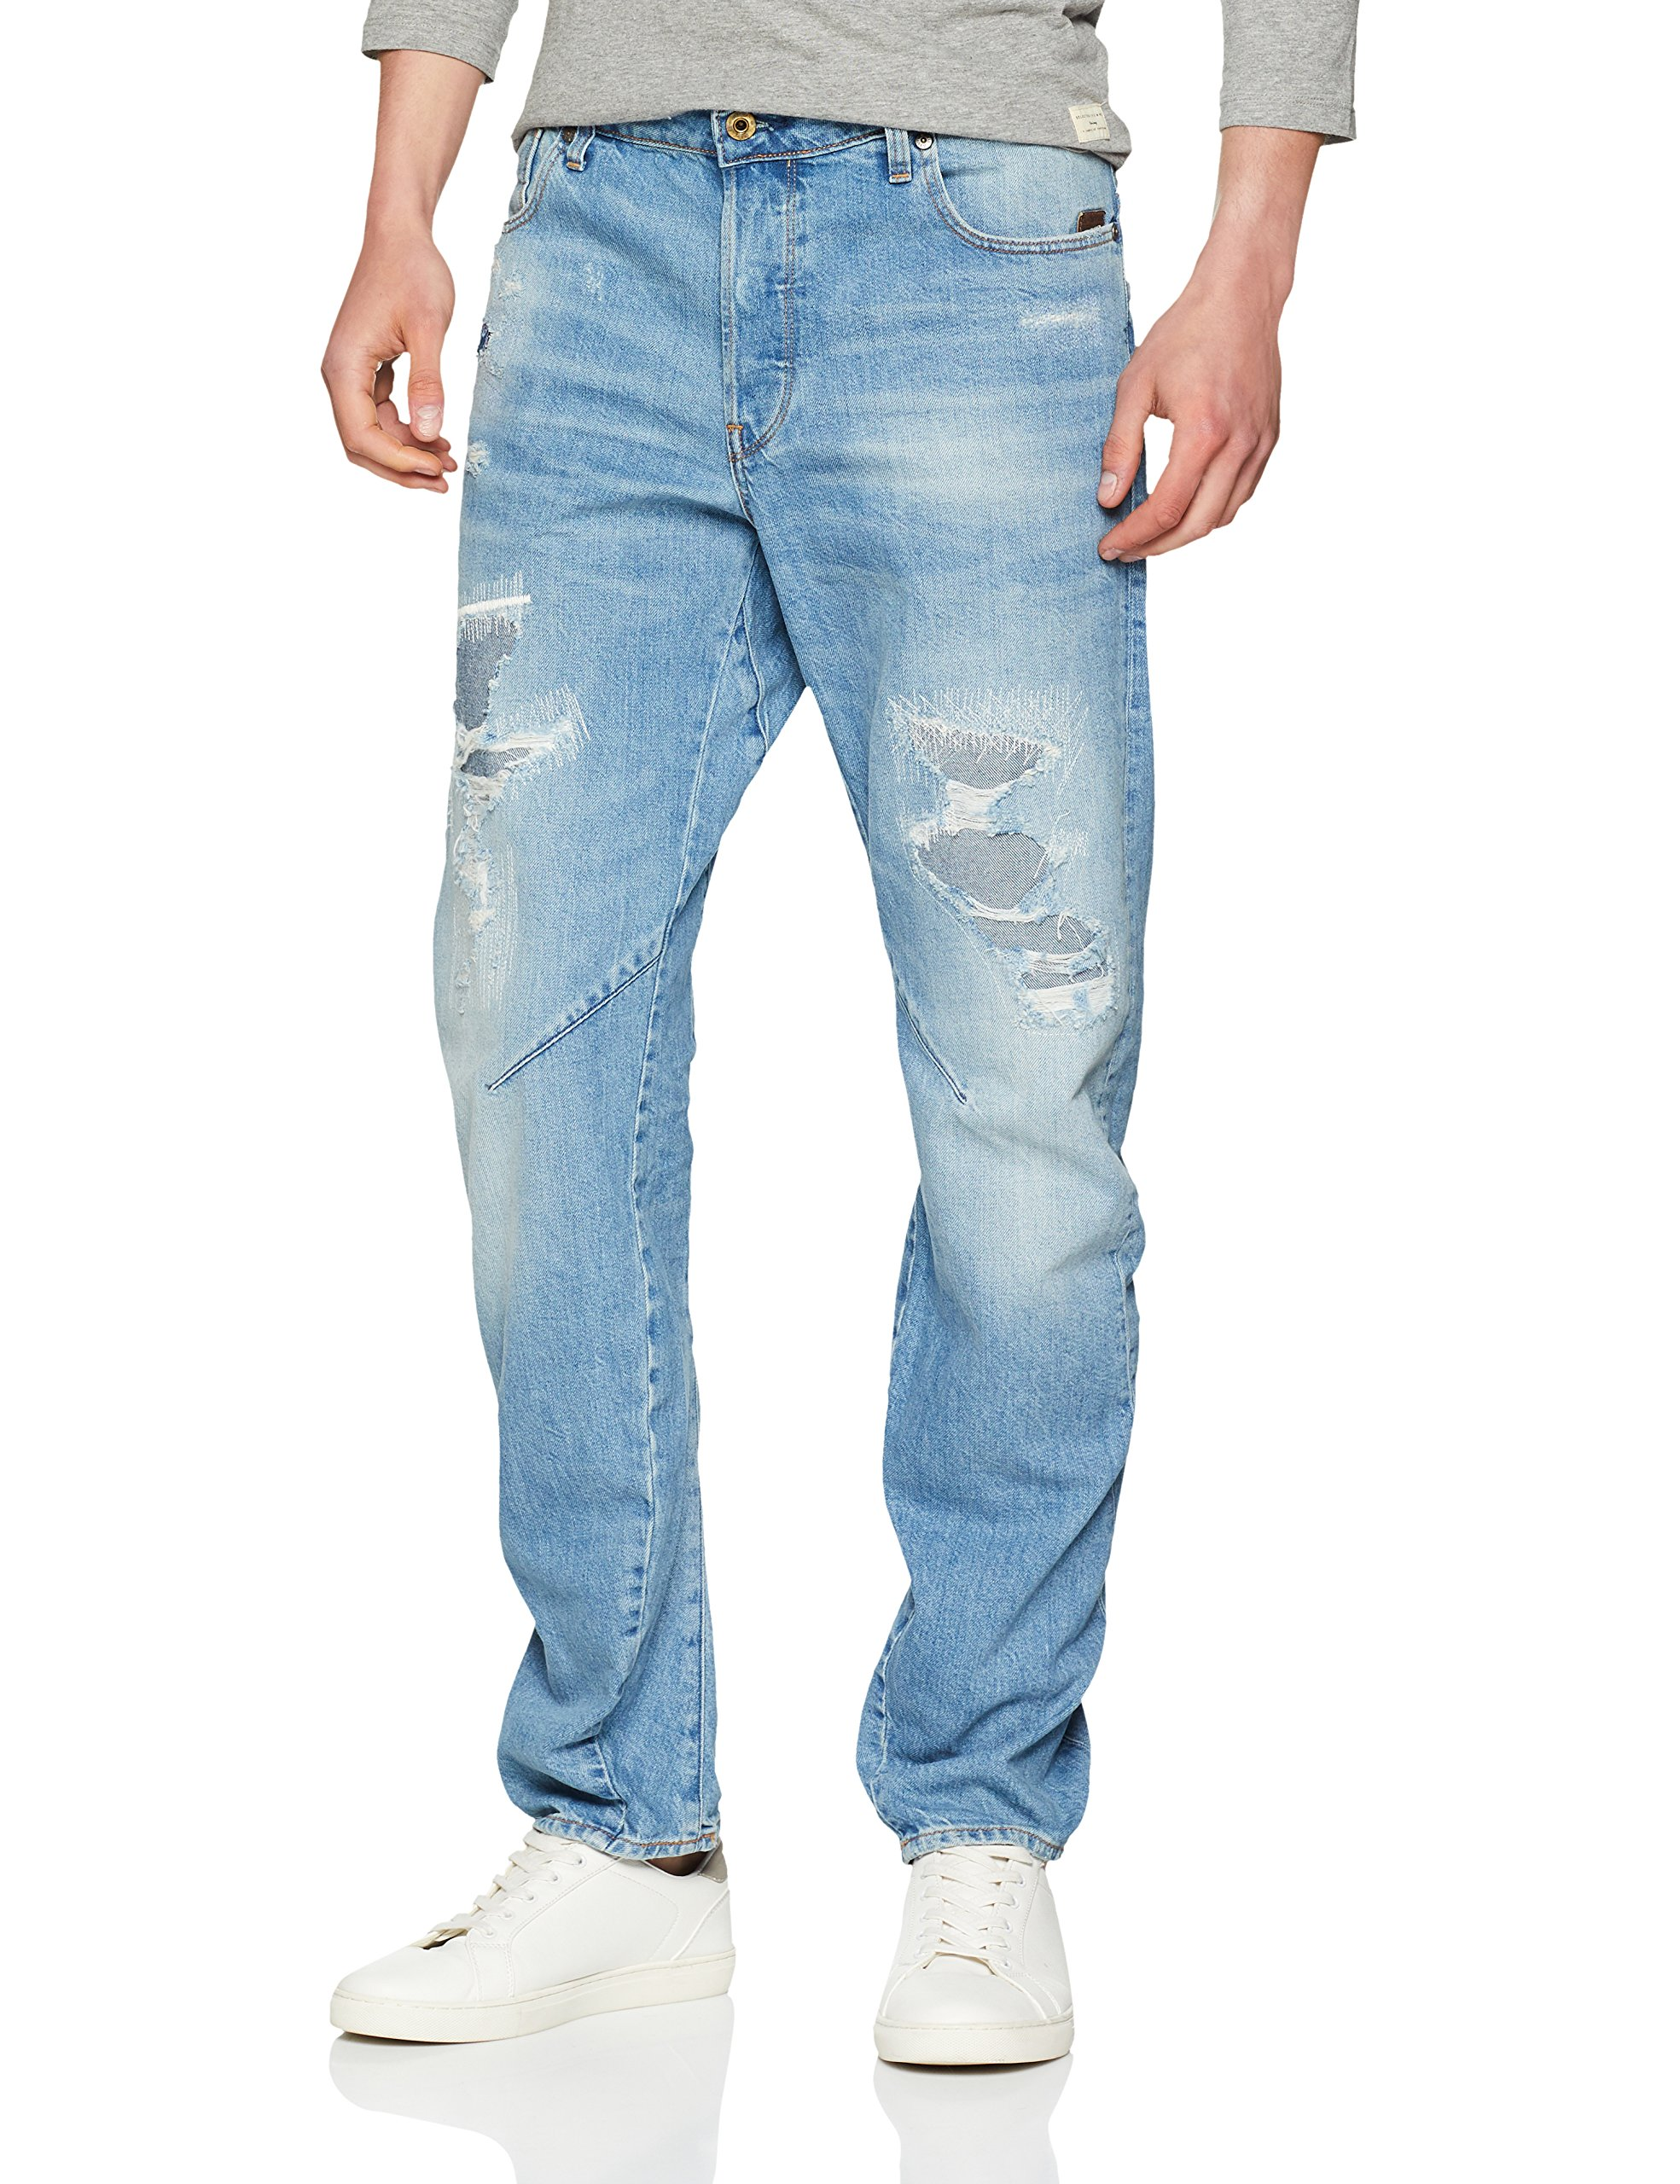 Aged Raw Relaxed Heavy 9299 940331w32l Homme Arc Fit star JeansBleumedium G 3d Restored Tapered R5j4AL